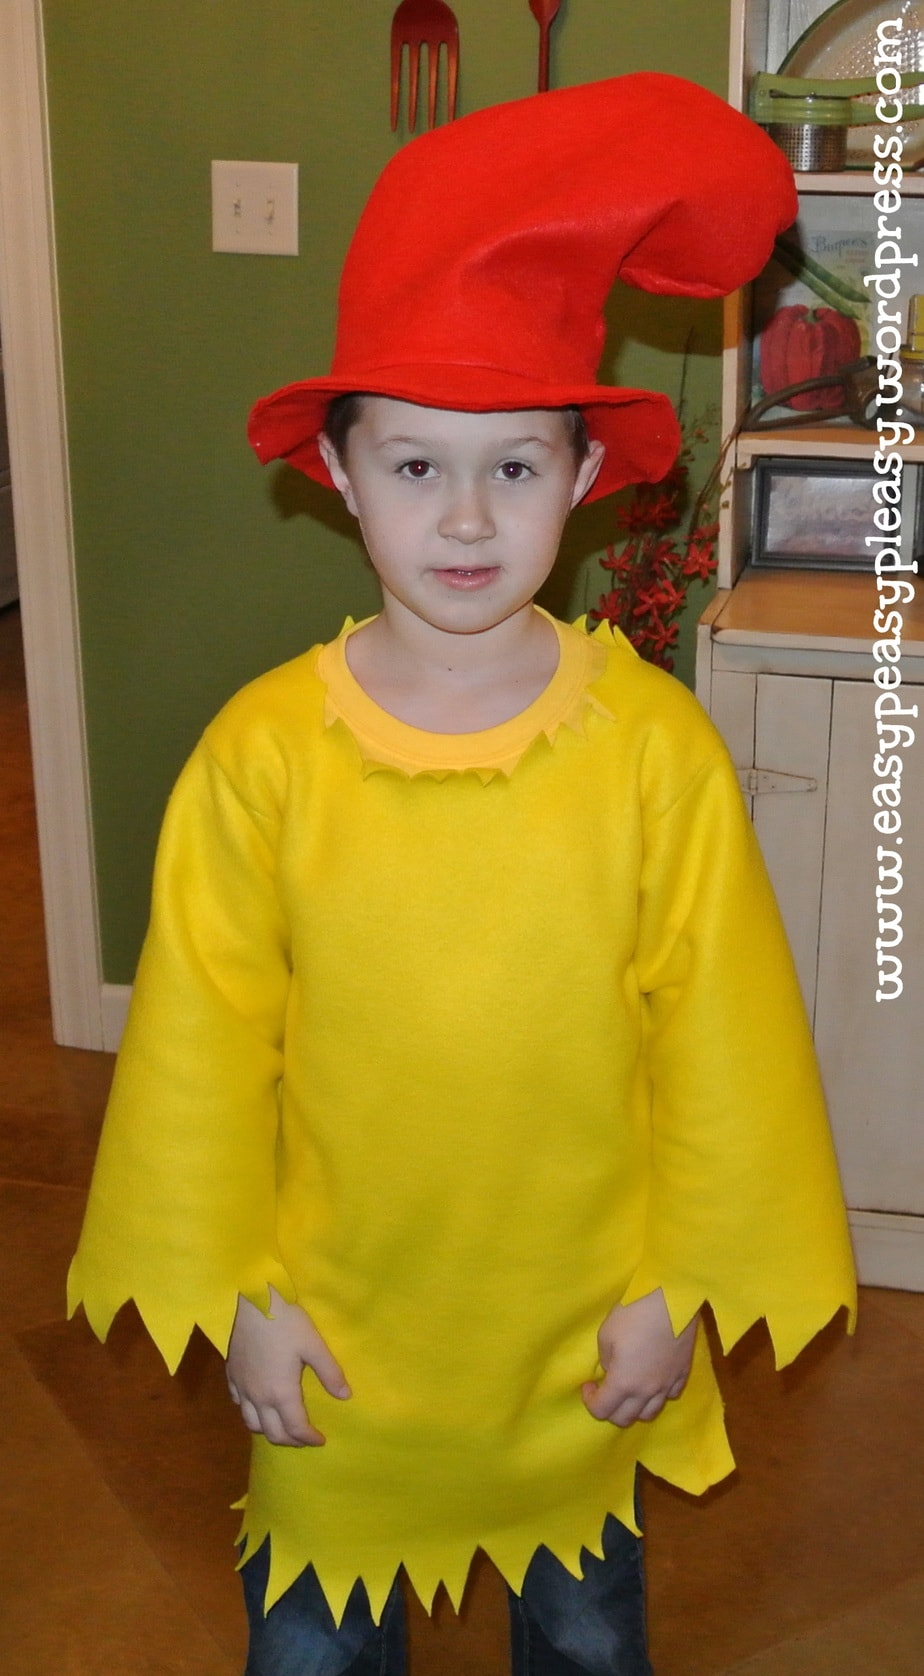 Dr. Seuss Sam I am hat